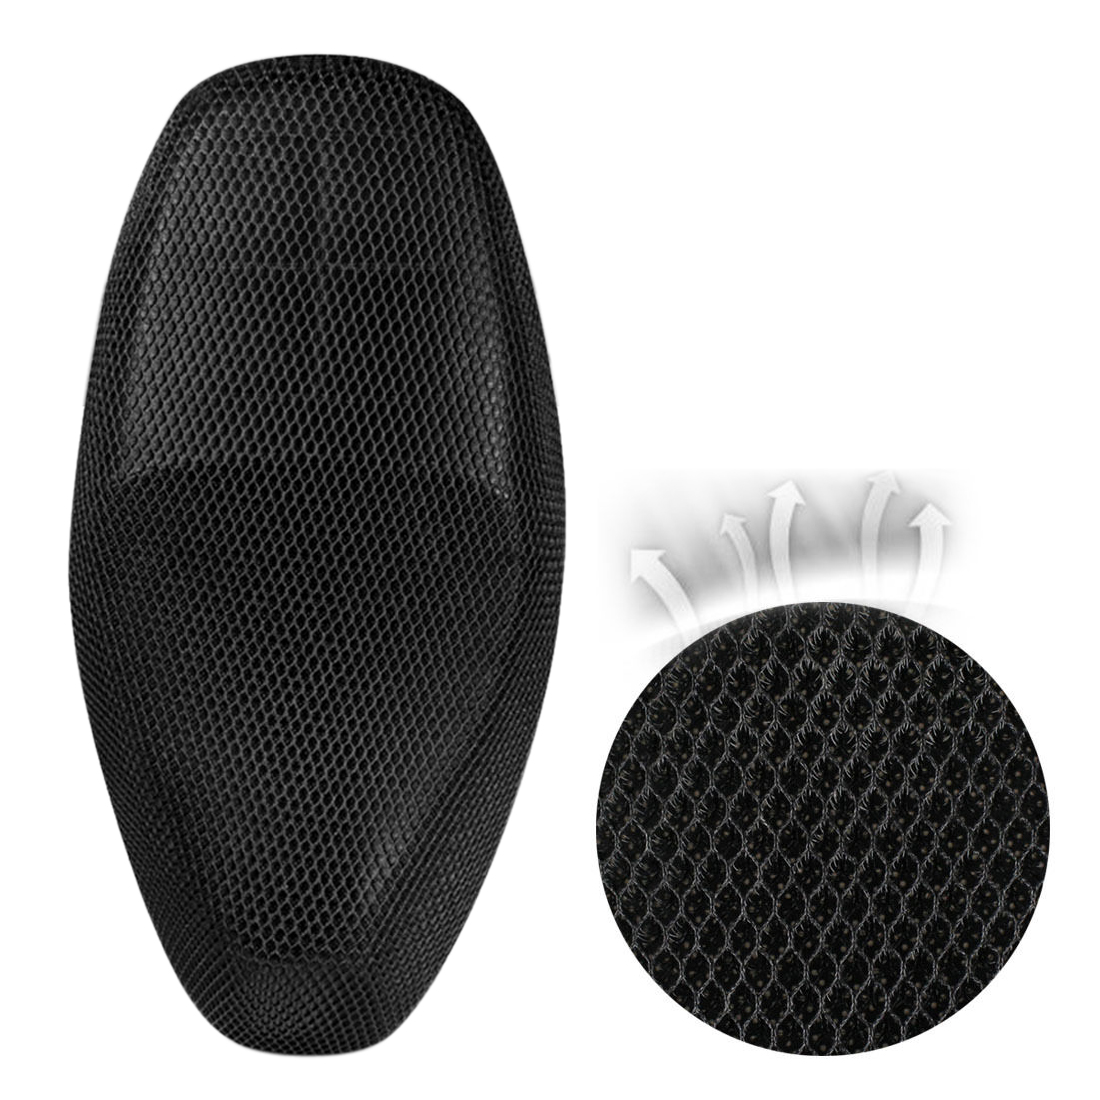 L Black Universal Motorcycle Soft Net Mesh Seat Full Cover Breathable Cushion - image 1 of 5